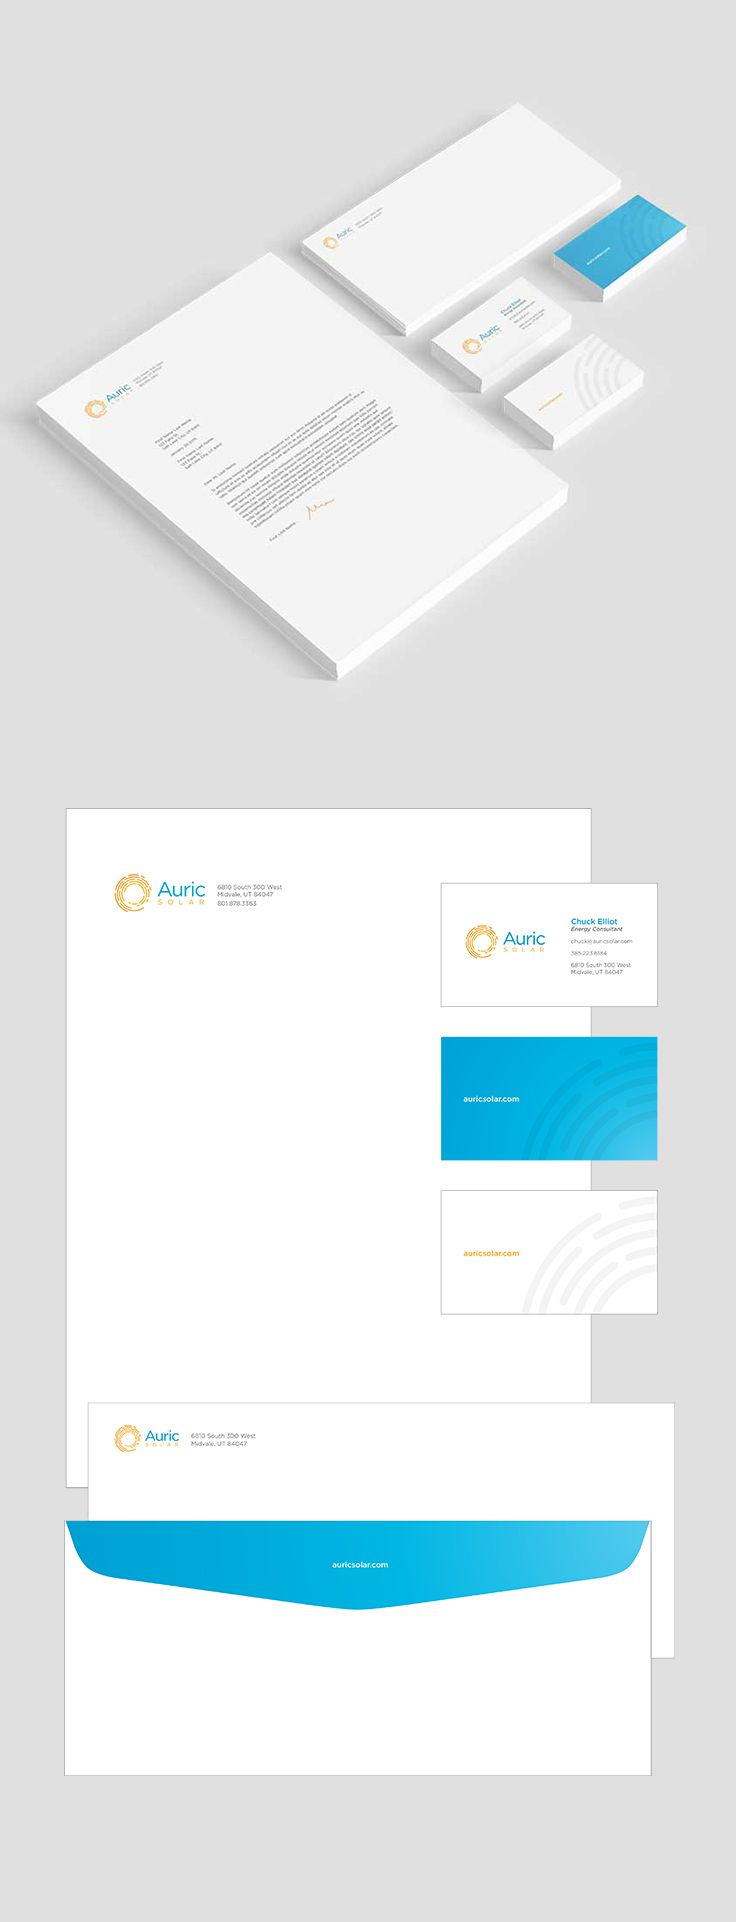 Auric Solar Stationery Design #epicmarketing #marketing #graphicdesign #print #stationery #letterhead